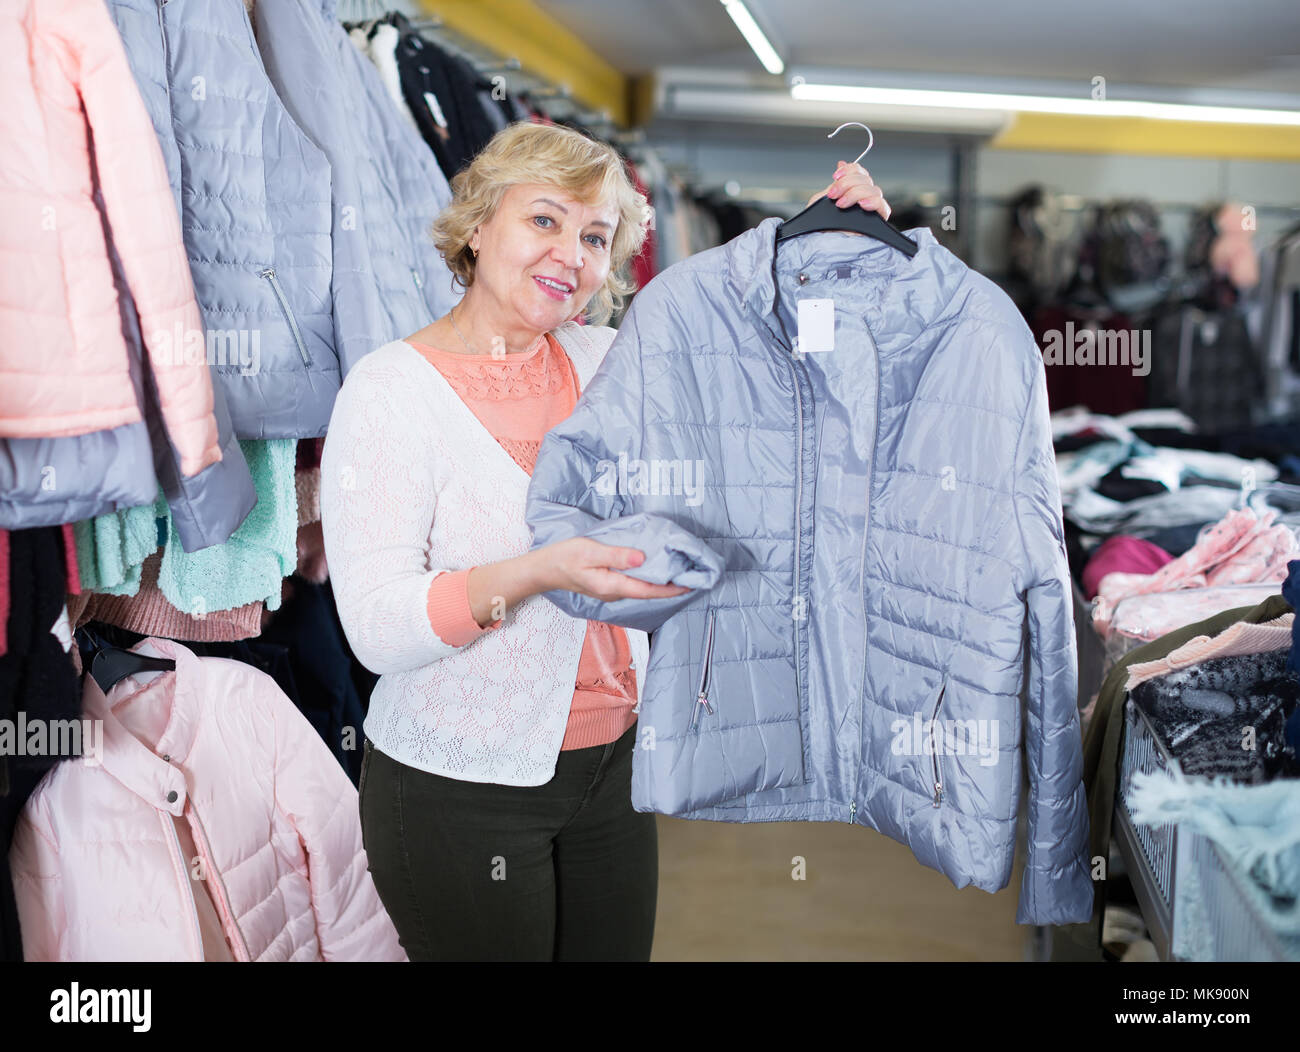 Adult female purchaser choosing windbreaker jackets in the shopping center - Stock Image